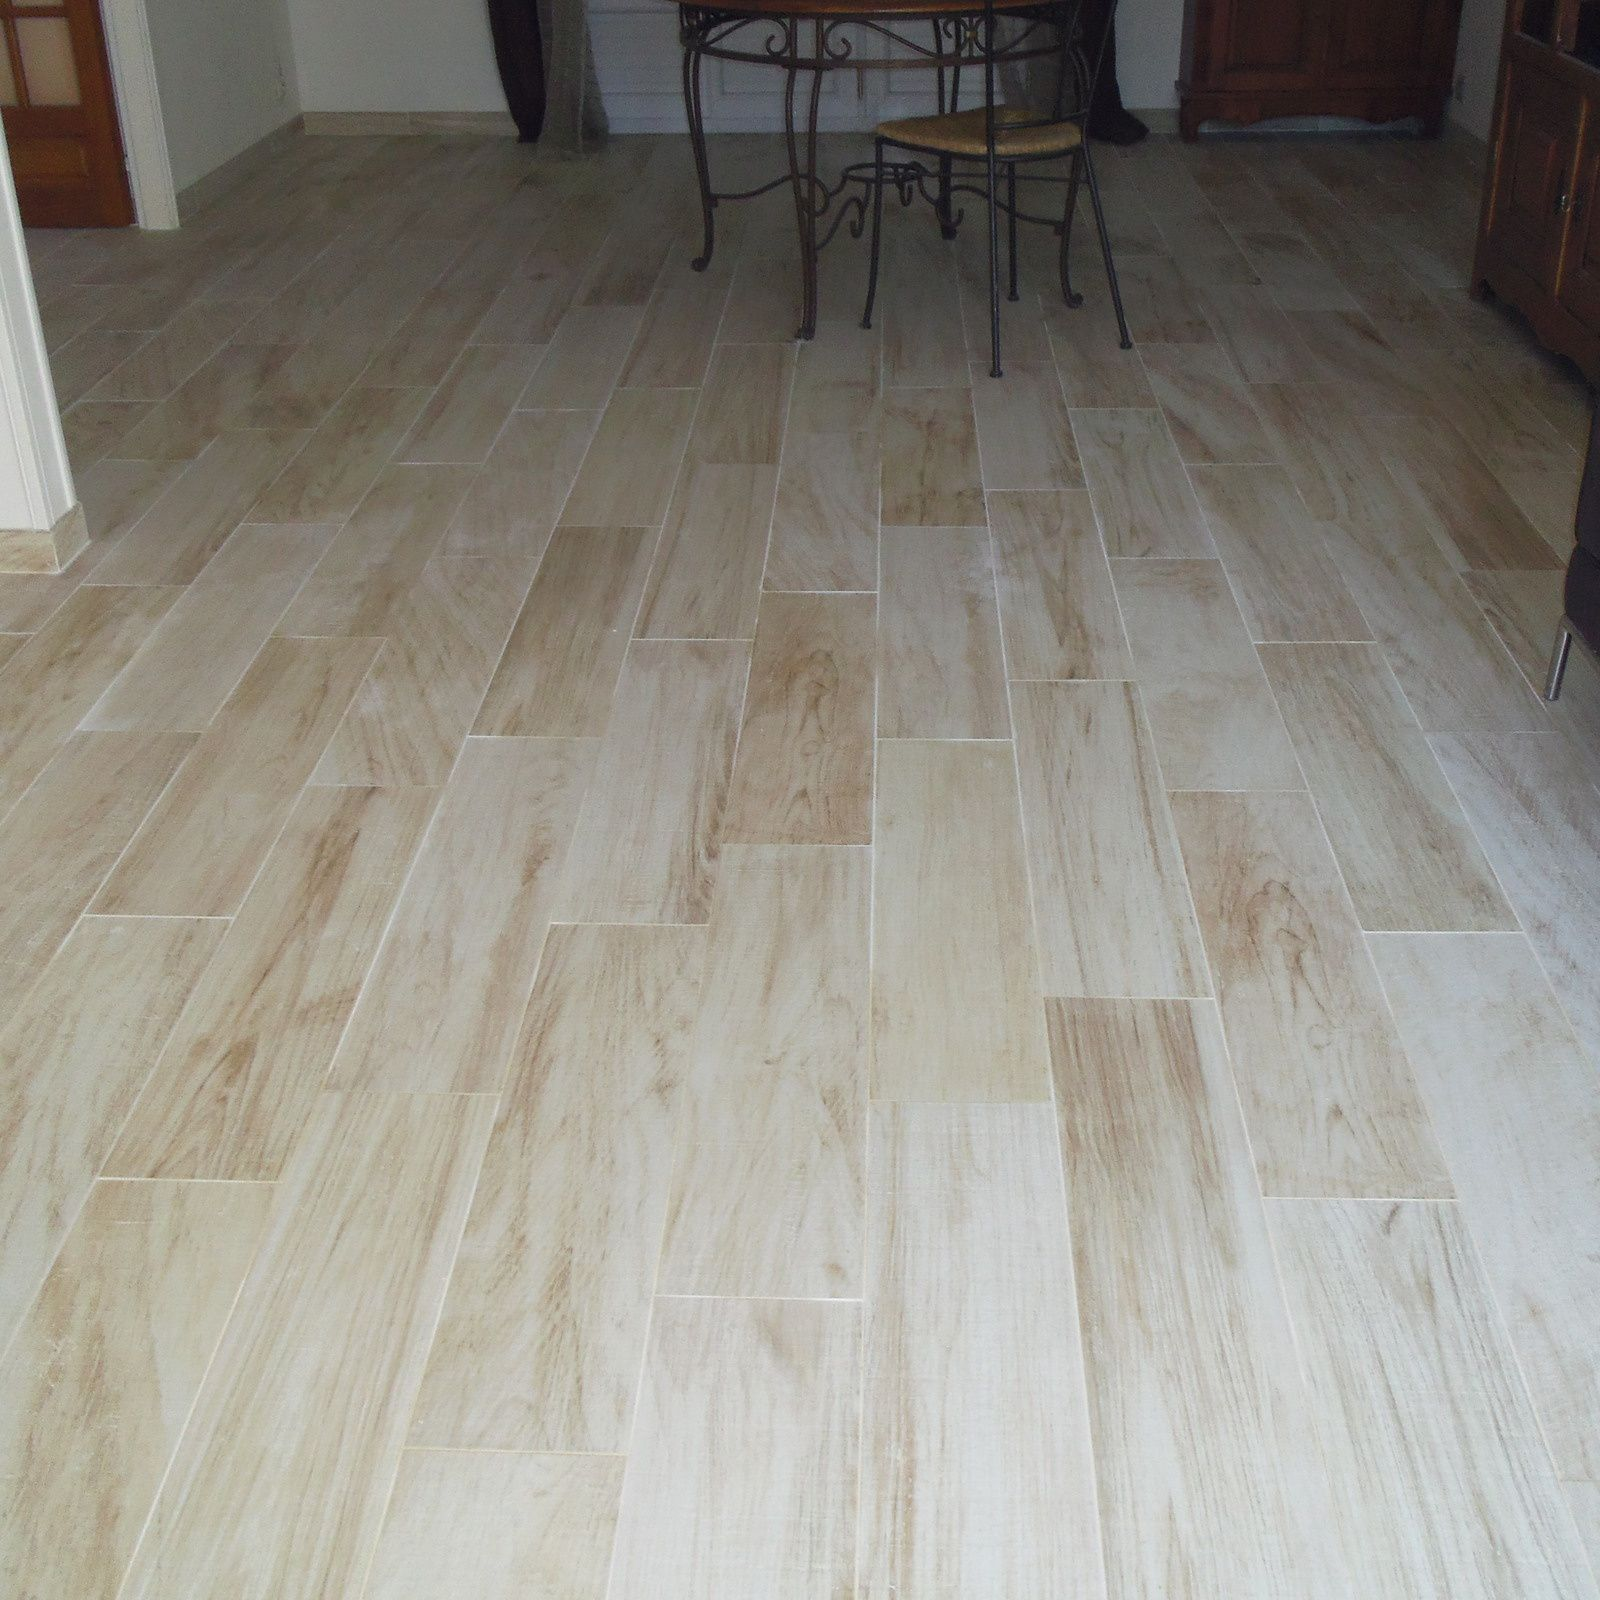 Pose de carrelage imitation parquet id es de conception sont int ressants - Pose stratifie sur carrelage ...